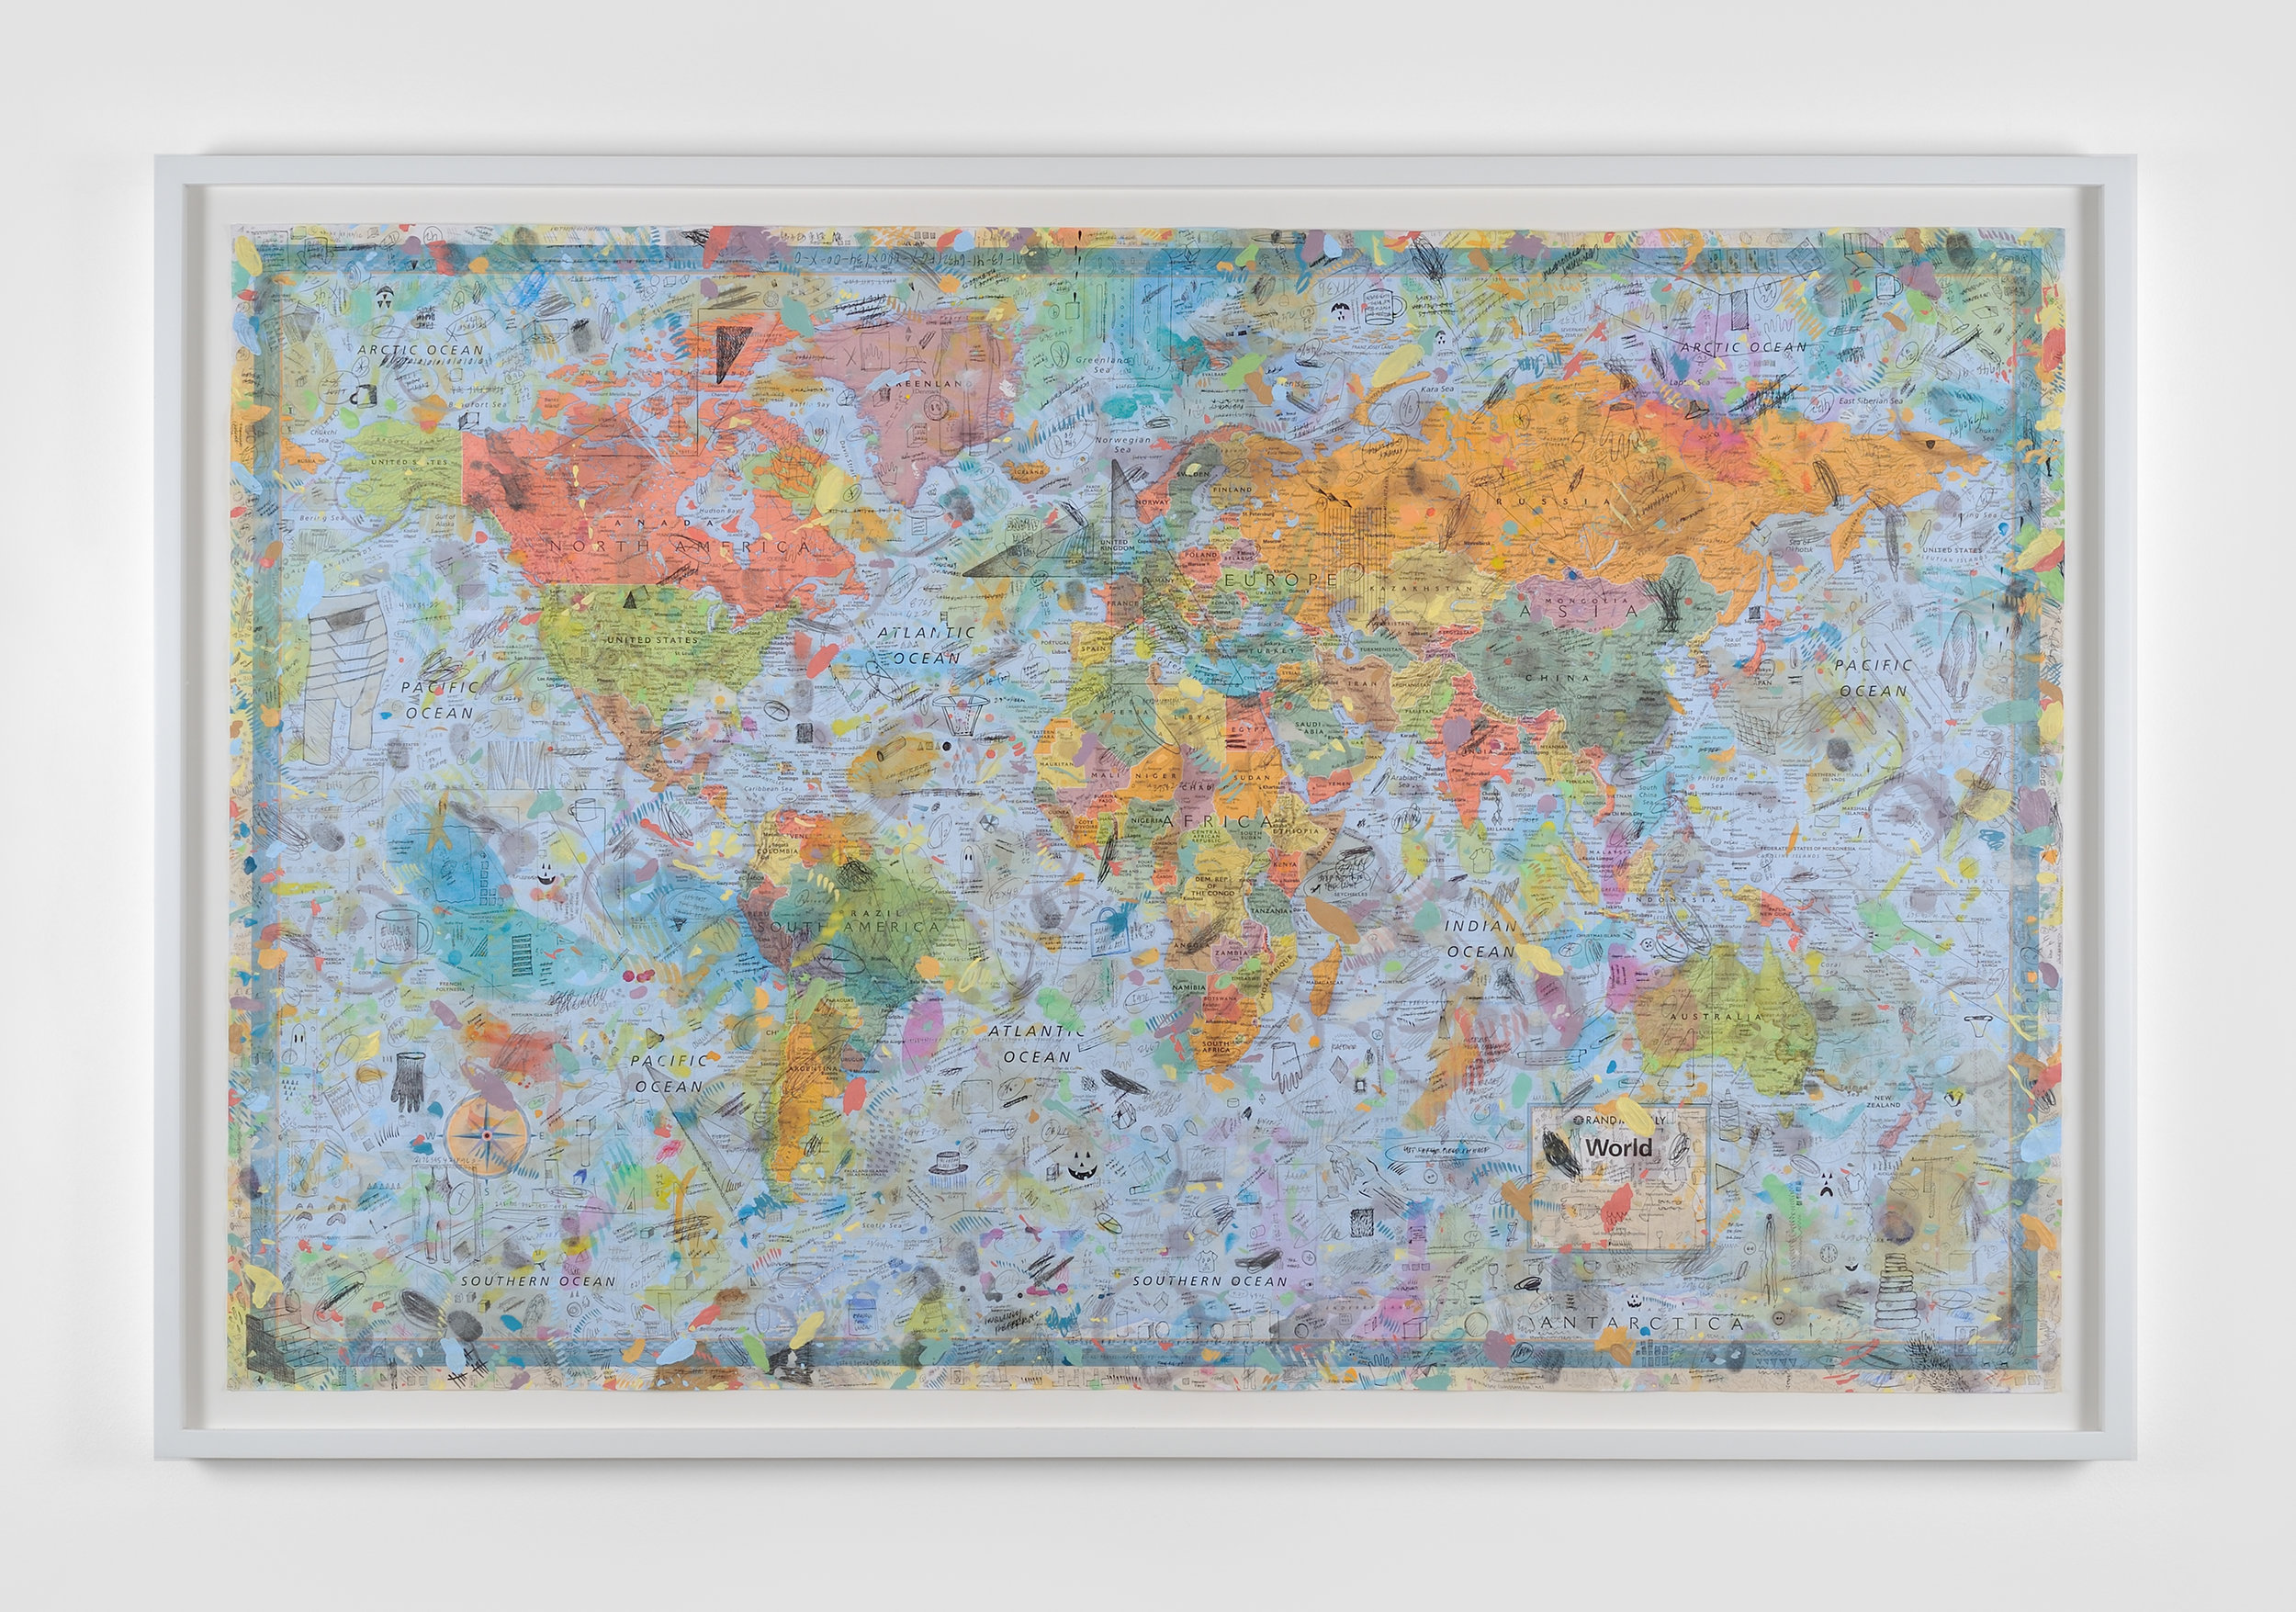 World Map, 2015 acrylic paint, watercolor, ball point pen, red wine, tea, coffee, marker, graphite on world map 89 x 134,5 cm - 32 x 50 inches (framed)